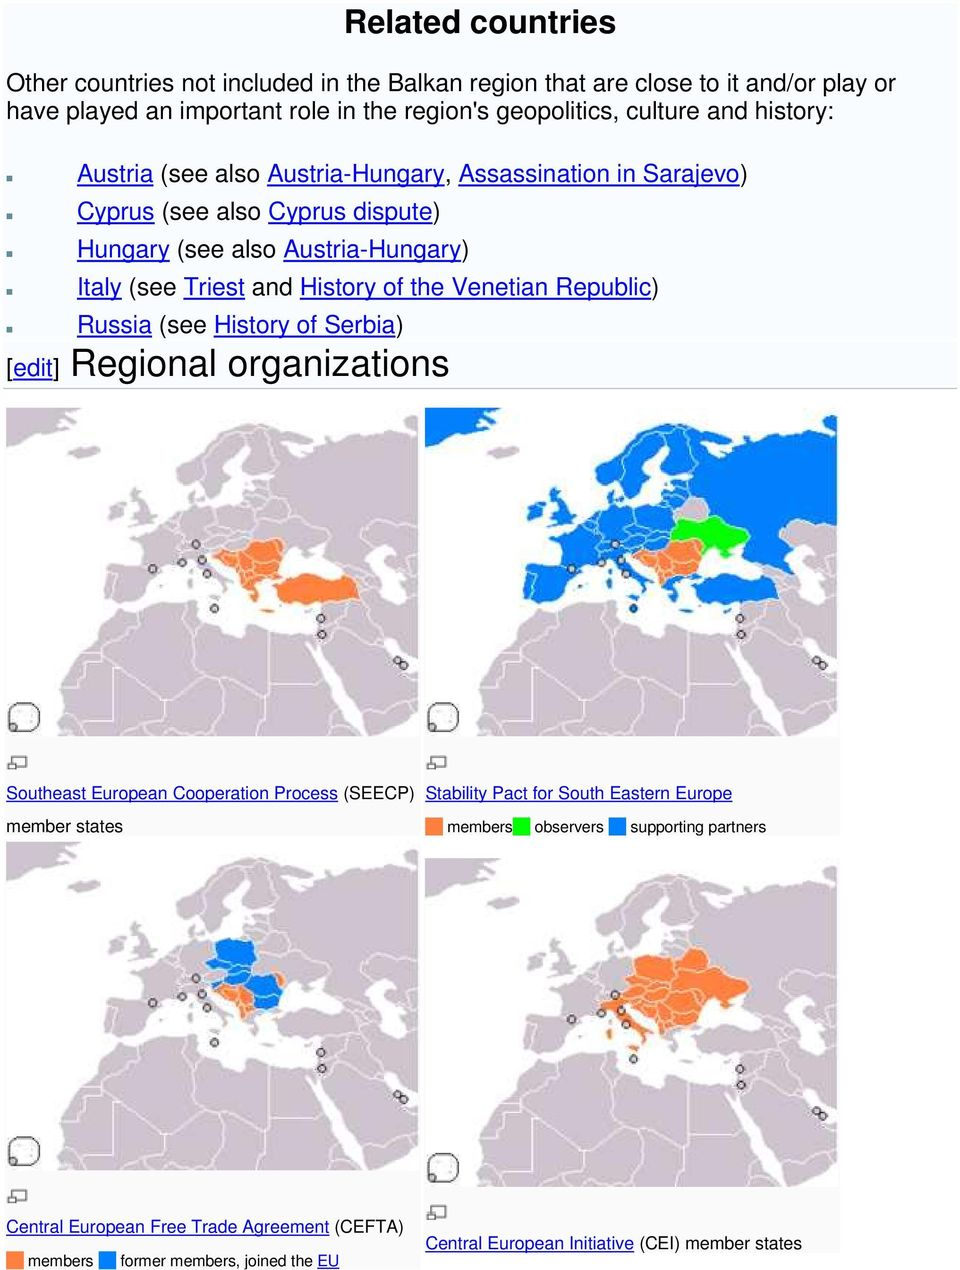 Venetian Republic) Russia (see History of Serbia) [edit] Regional organizations Southeast European Cooperation Process (SEECP) member states Stability Pact for South Eastern